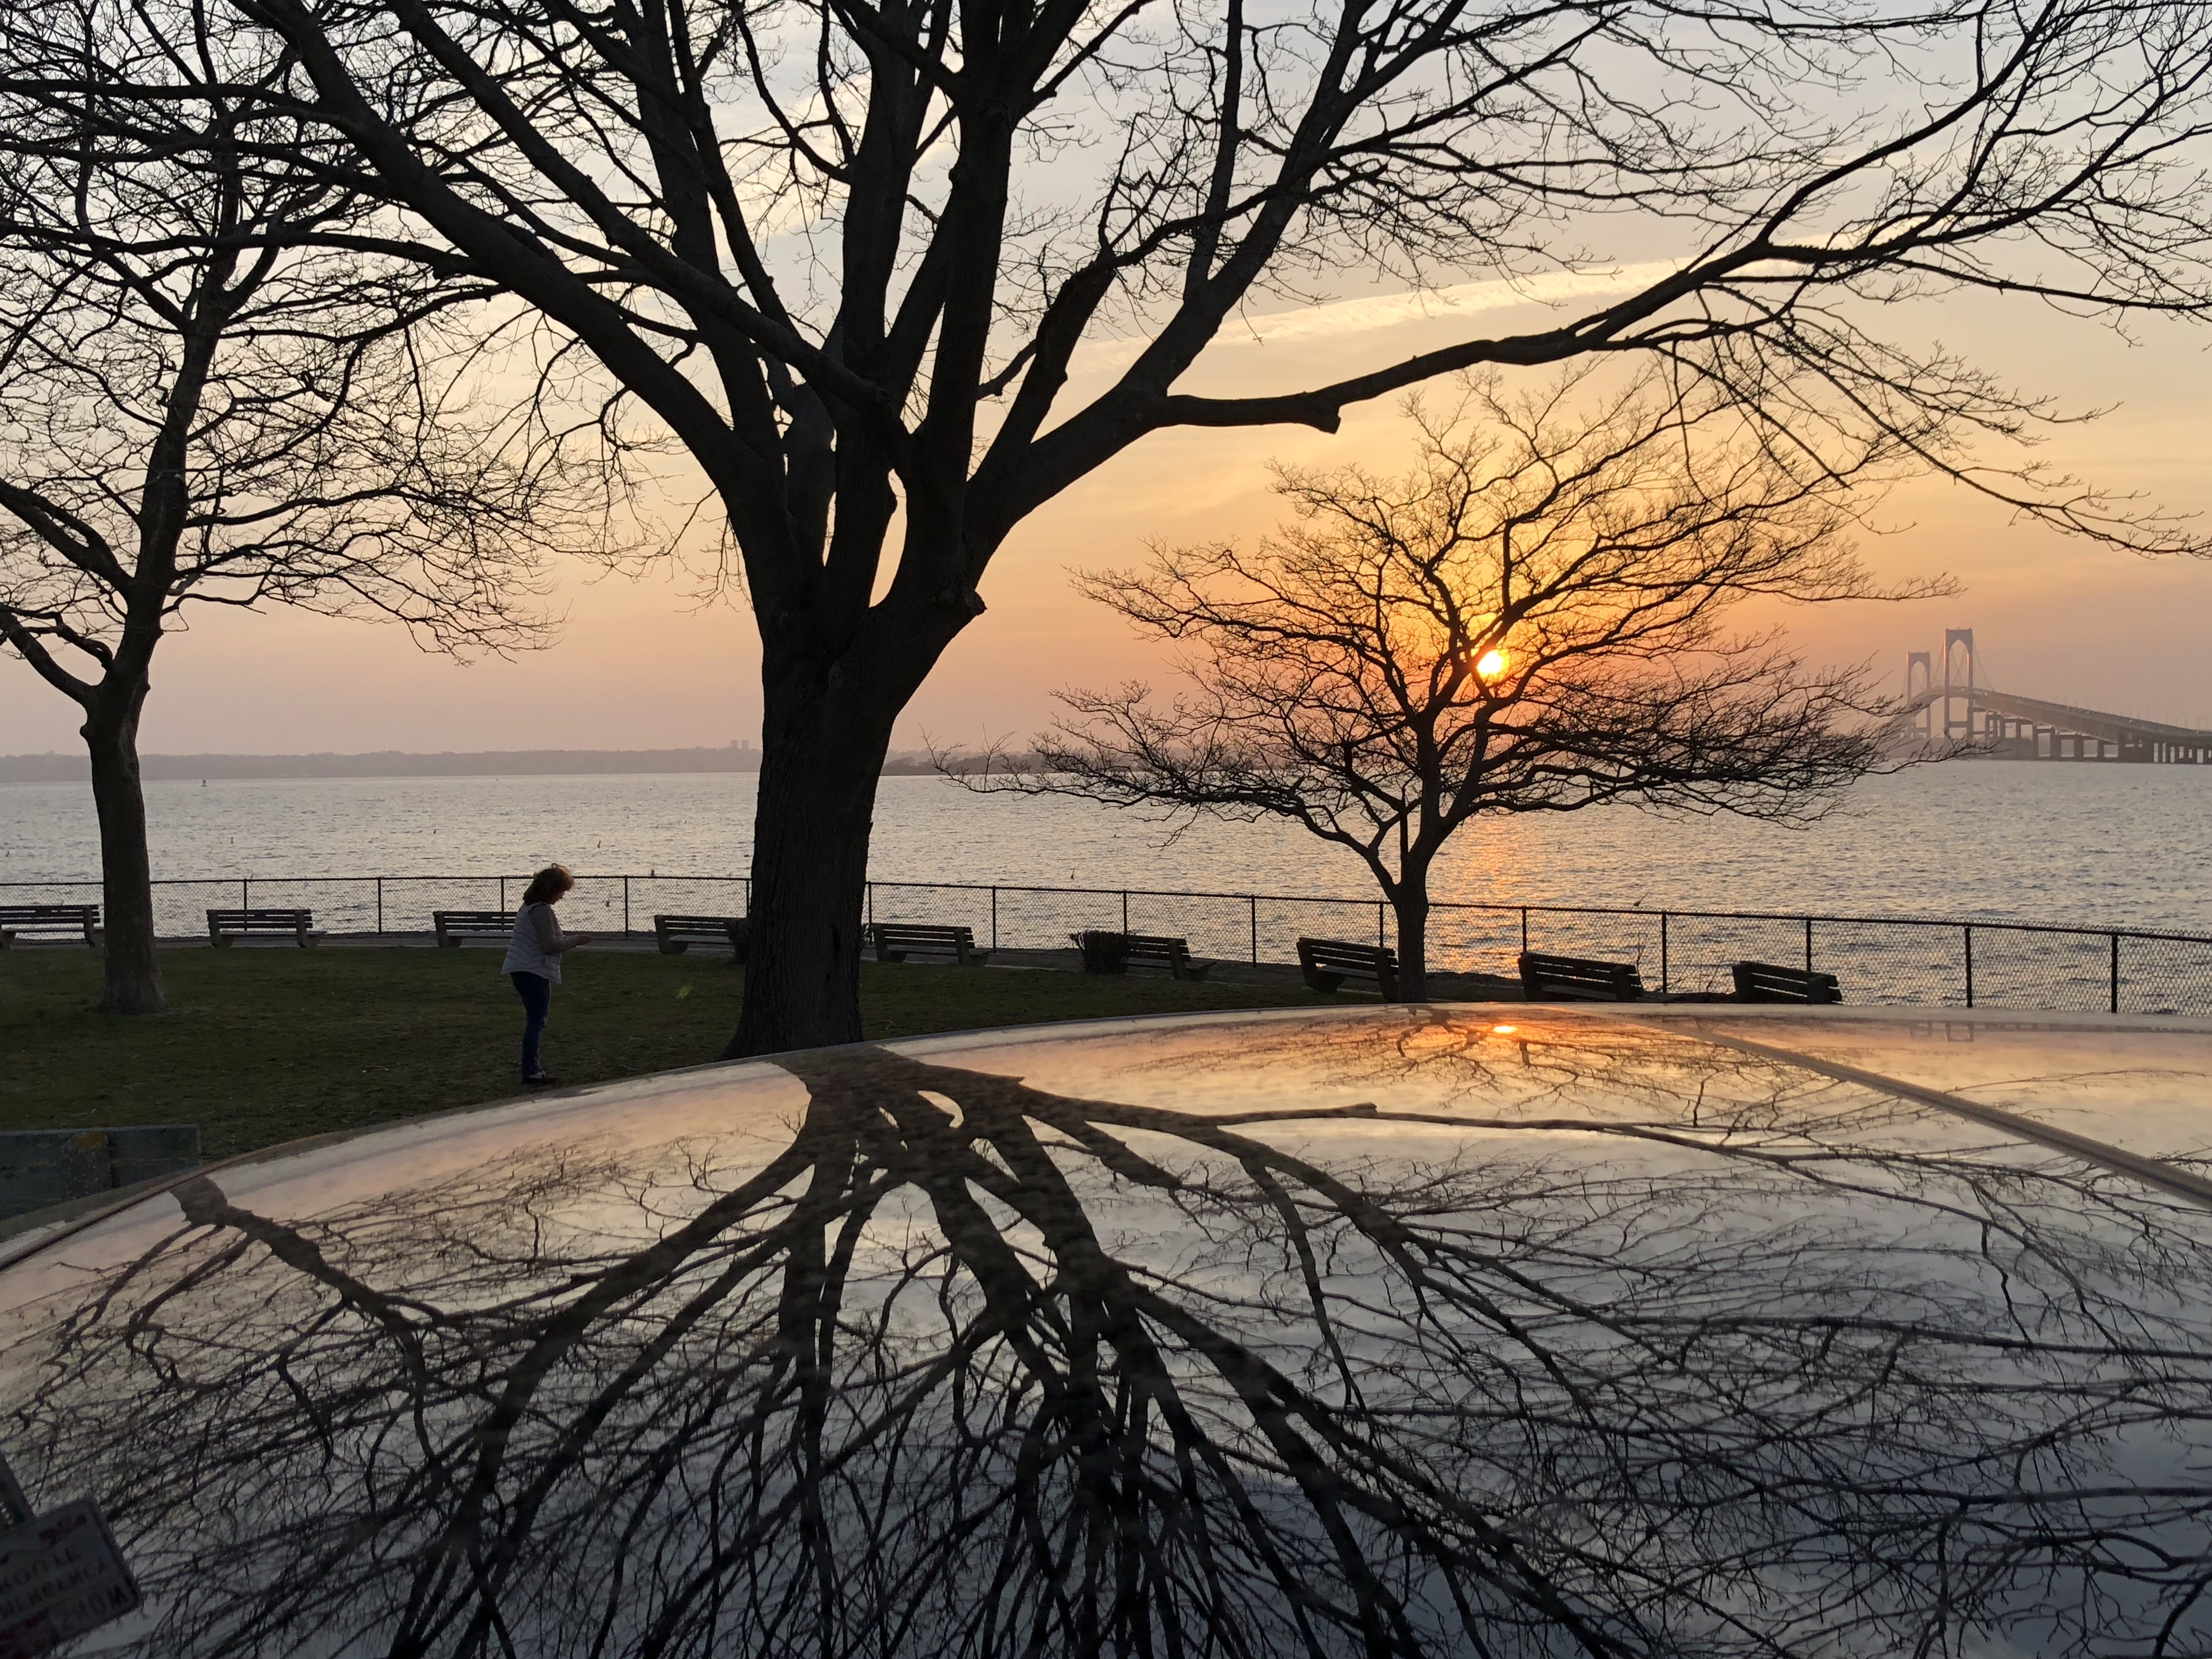 Tree Reflection on car roof at sunset